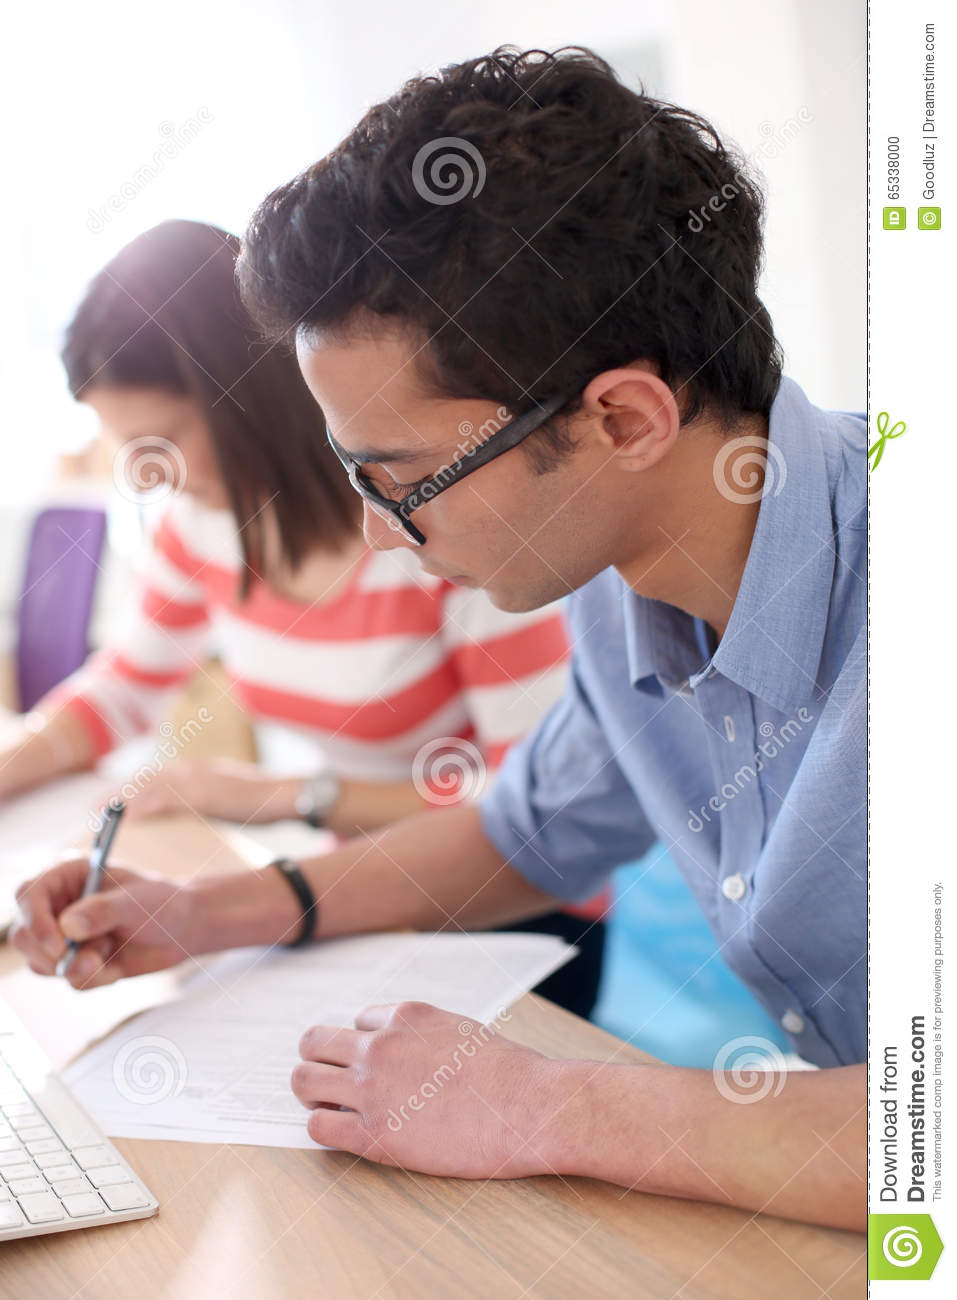 students filling application form stock photo image  students filling application form